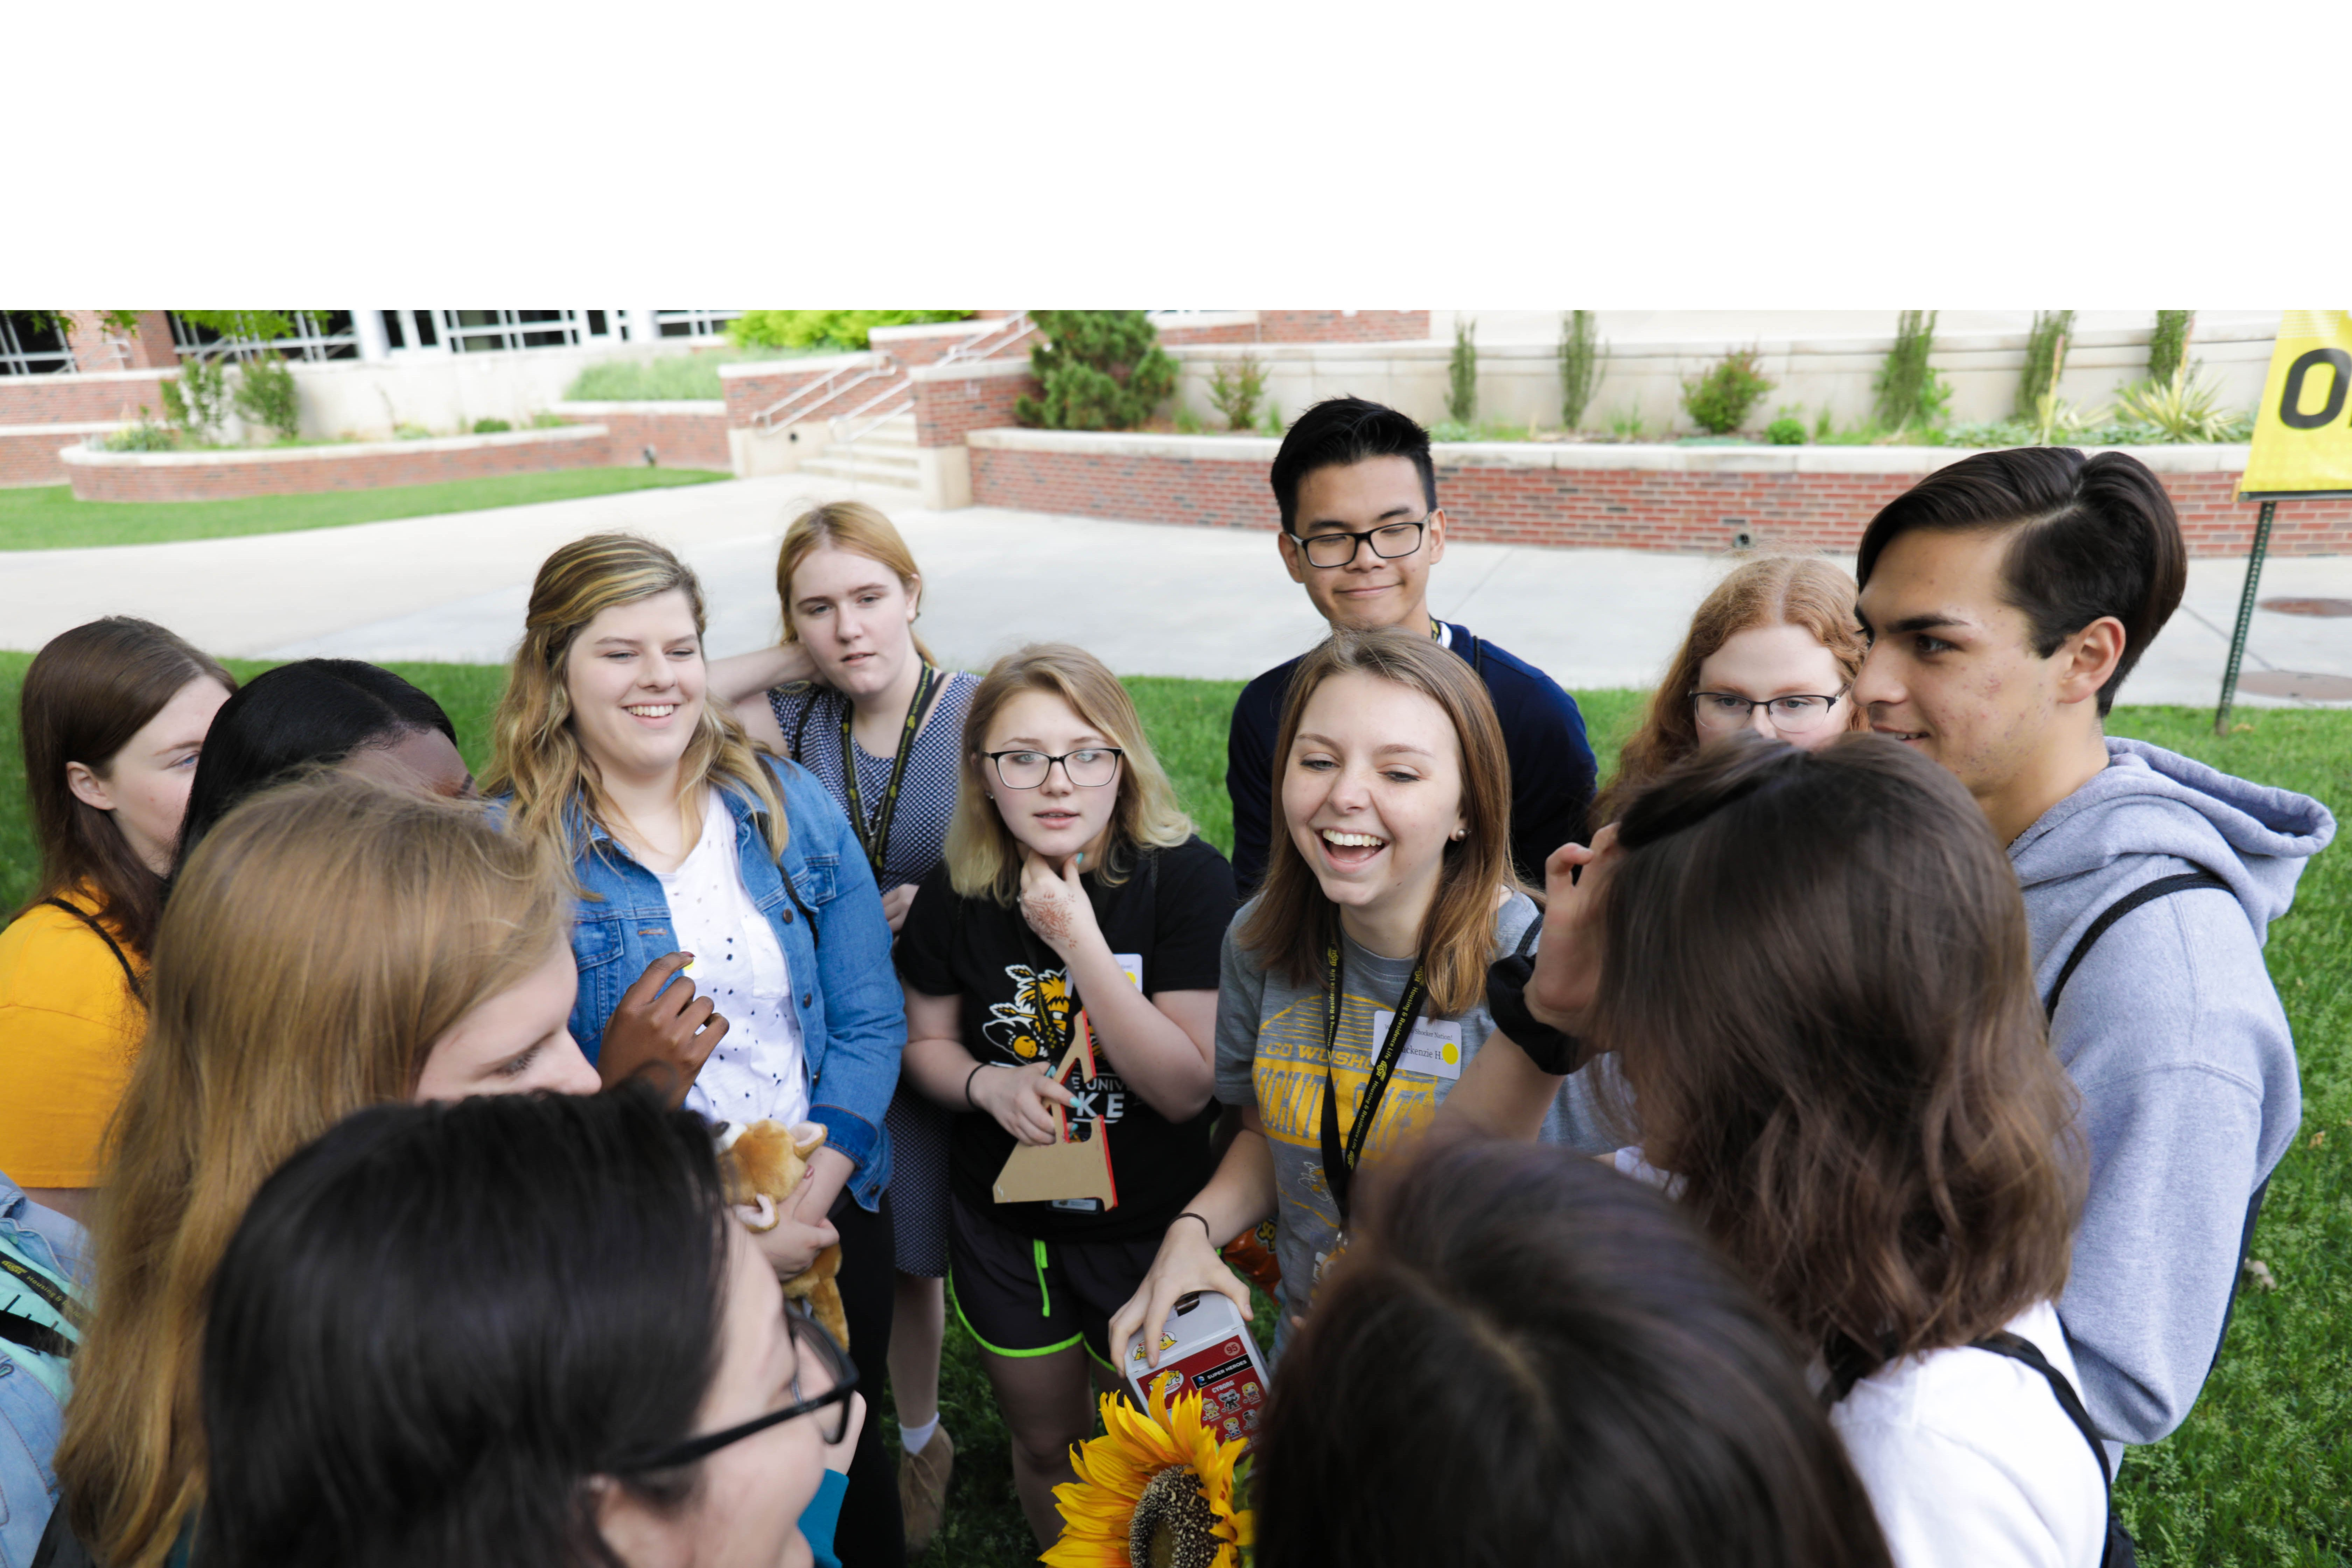 A transition mentor leads an ice-breaker activity with an orientation group